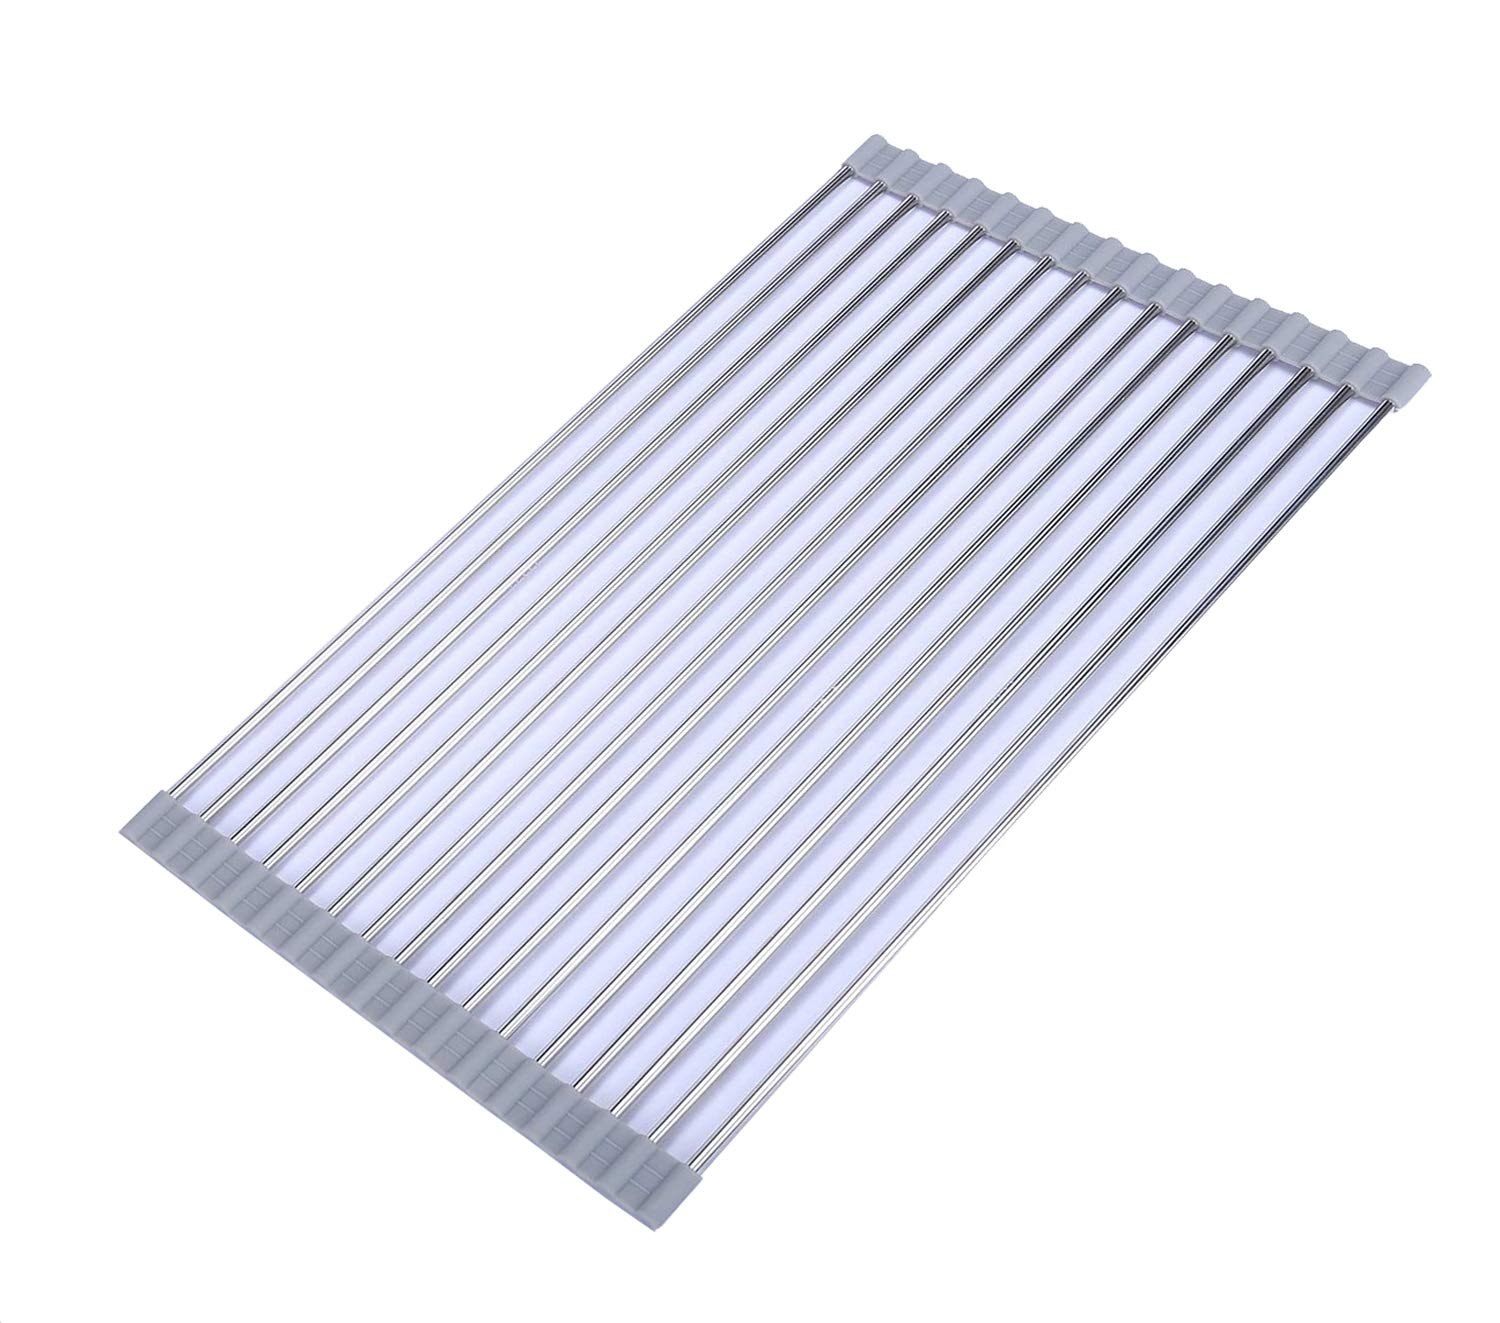 Ahyuan Roll up Dish Drainer Over The Sink Dish Drying Rack Roll up Dish Drying Rack Dish Drainers for Kitchen Sink Counter Roll-up Drying Rack SUS304 Stainless Steel Dish Drying Rack (Light Gray)